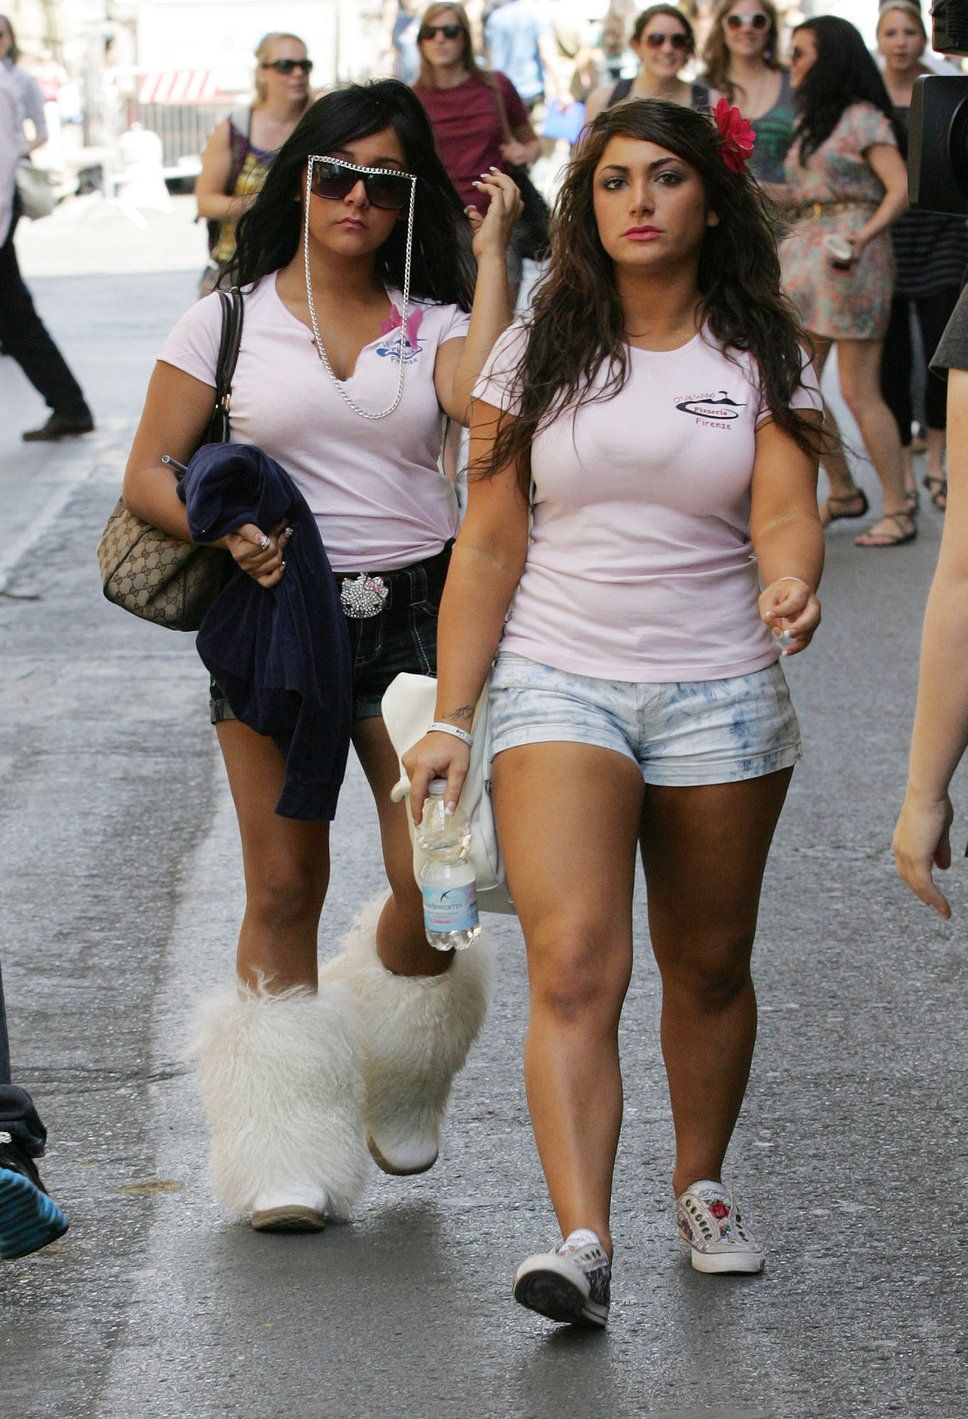 Yes, I am addicted to Jersey Shore, Yes, I did research